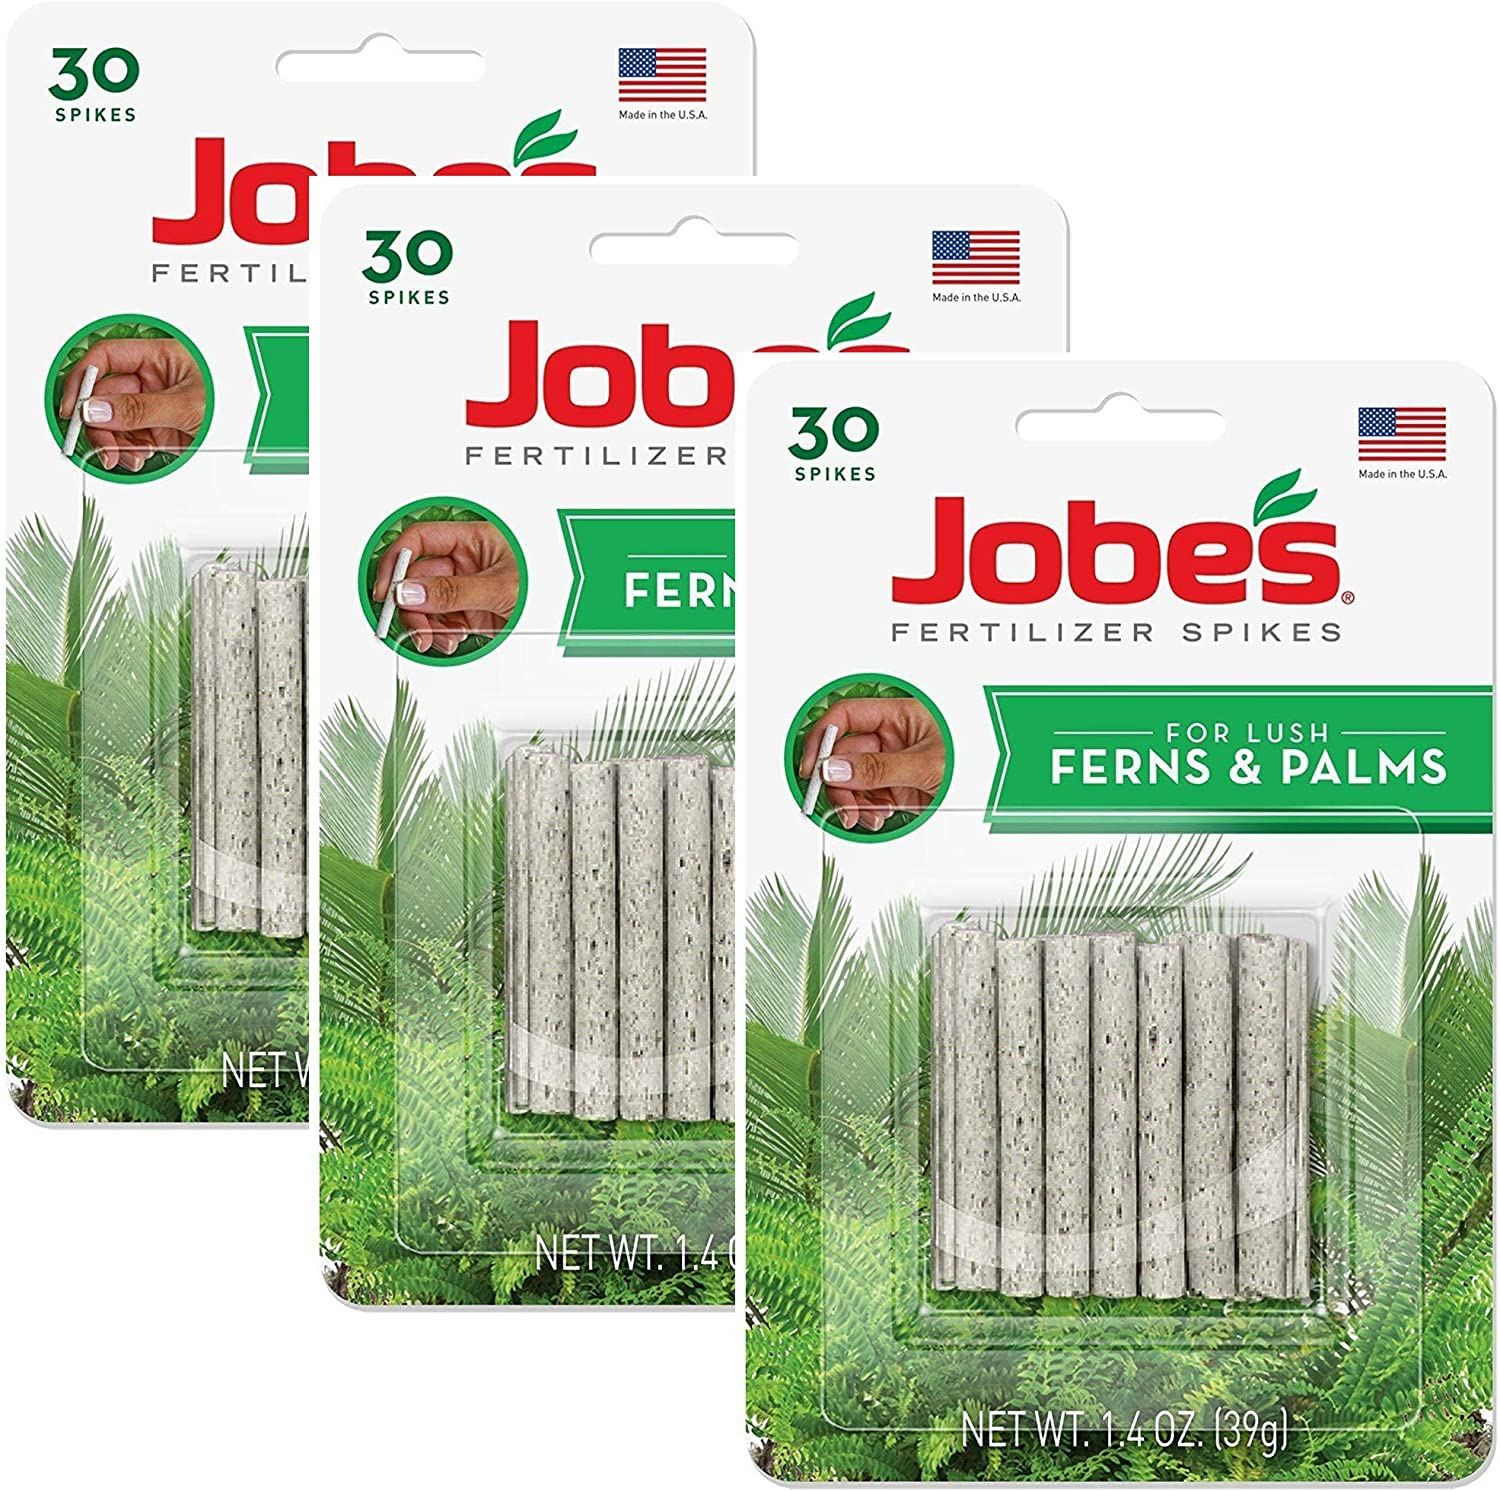 Jobe's Fern & Palm Fertilizer Spikes, 16-2-6 Time Release Fertilizer for Indoor Palm Plants, 3 Pack (30 Spikes per Each Package)